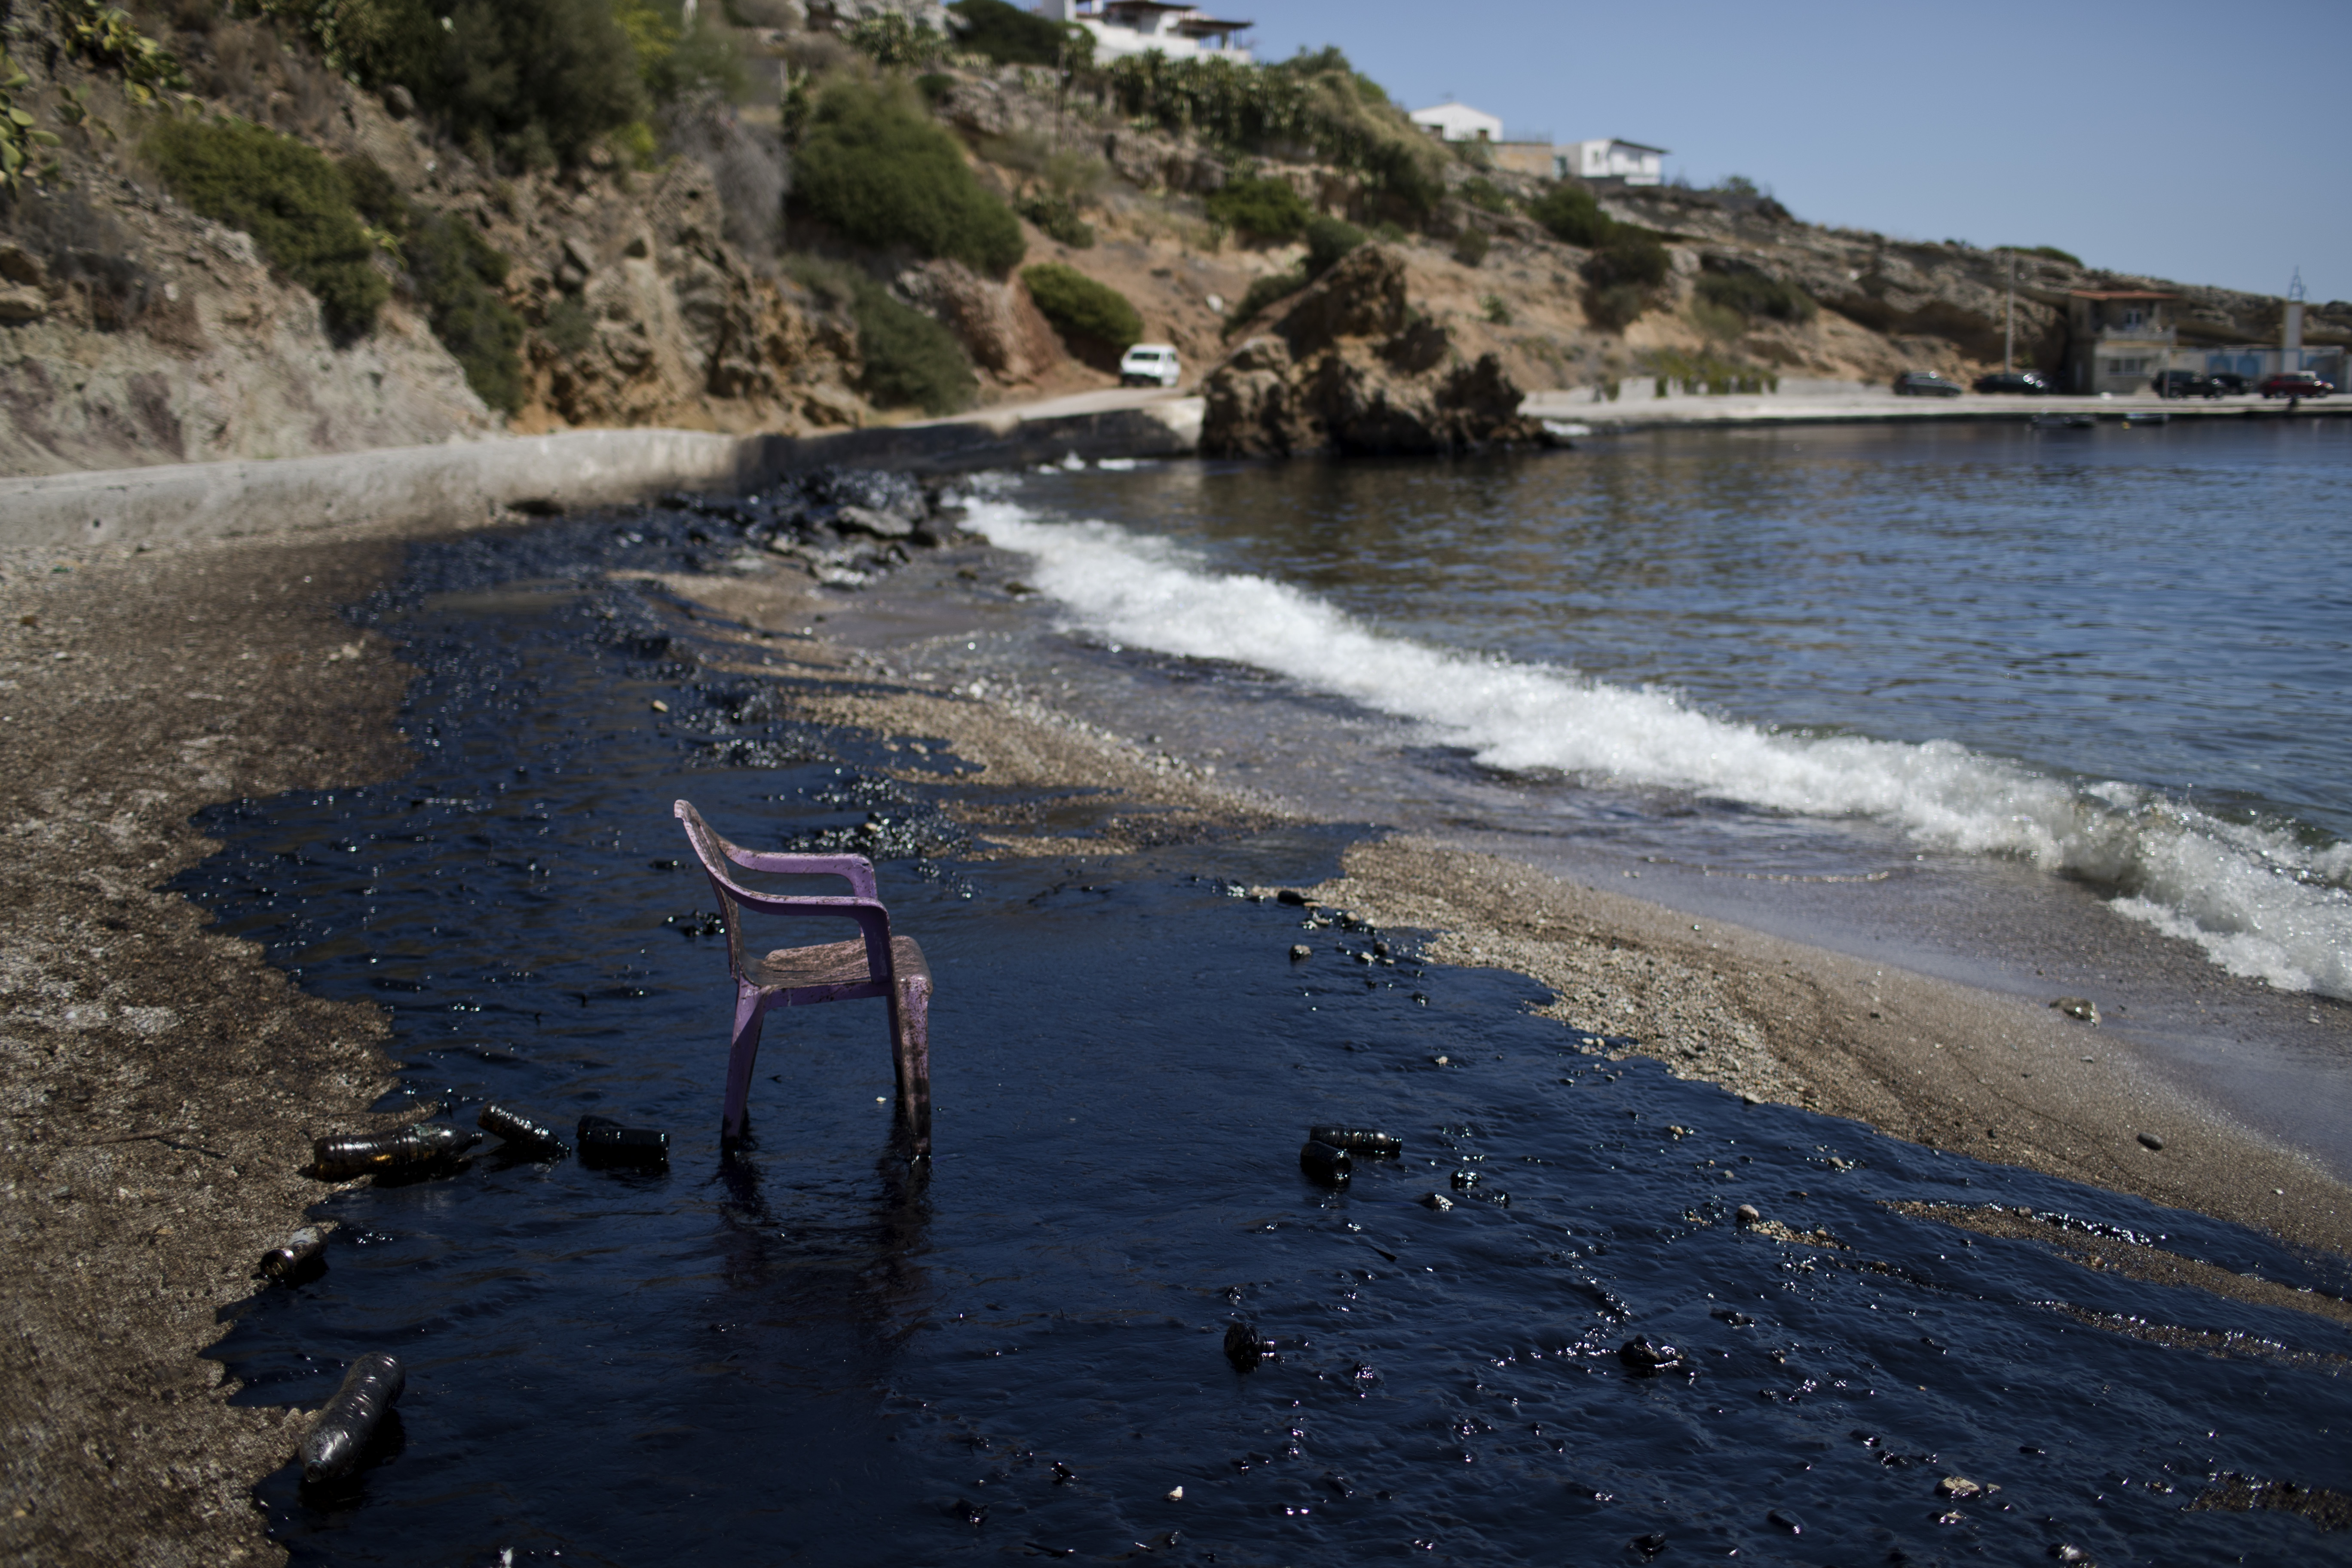 APTOPIX Greece Tanker Pollution A plastic chair stands on a polluted beach by a big oil spillage on the island of Salamina, near Athens, on Tuesday, Sept. 12, 2017. Greece's merchant marine minister says clean-up crews are working to contain pollution caused after the small tanker Agia Zoni II sank off Salamina on Sunday, Sept. 10, with a cargo of 2,200 tons of fuel oil and 370 tons of marine gas oil. (AP Photo/Petros Giannakouris)